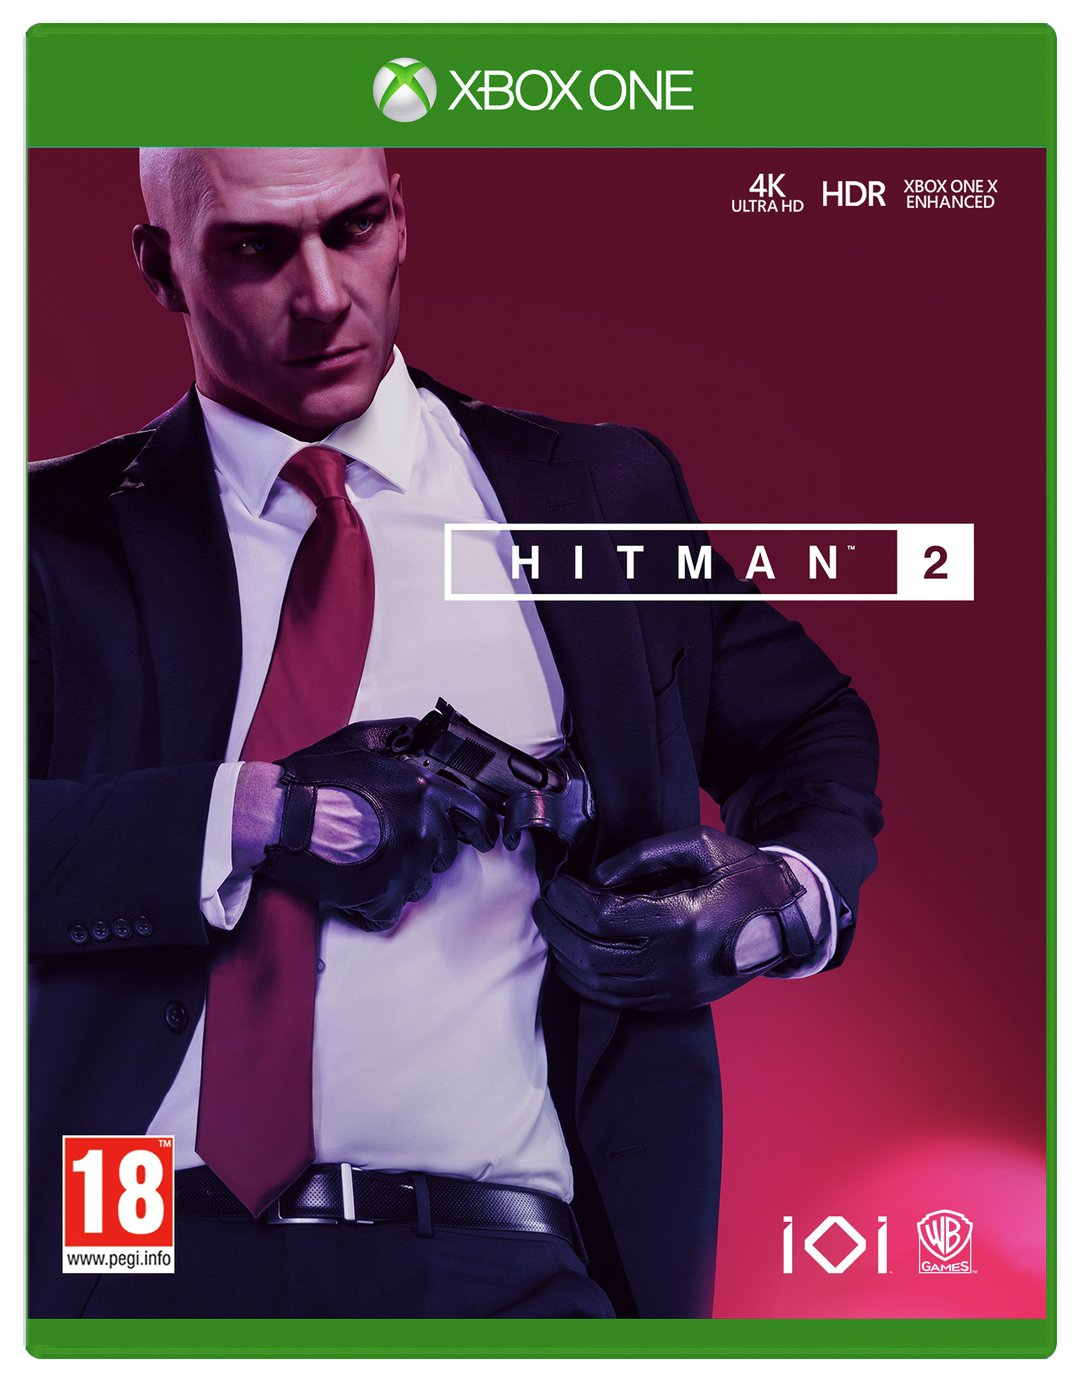 Hitman 2 Xbox One Game from Hitman